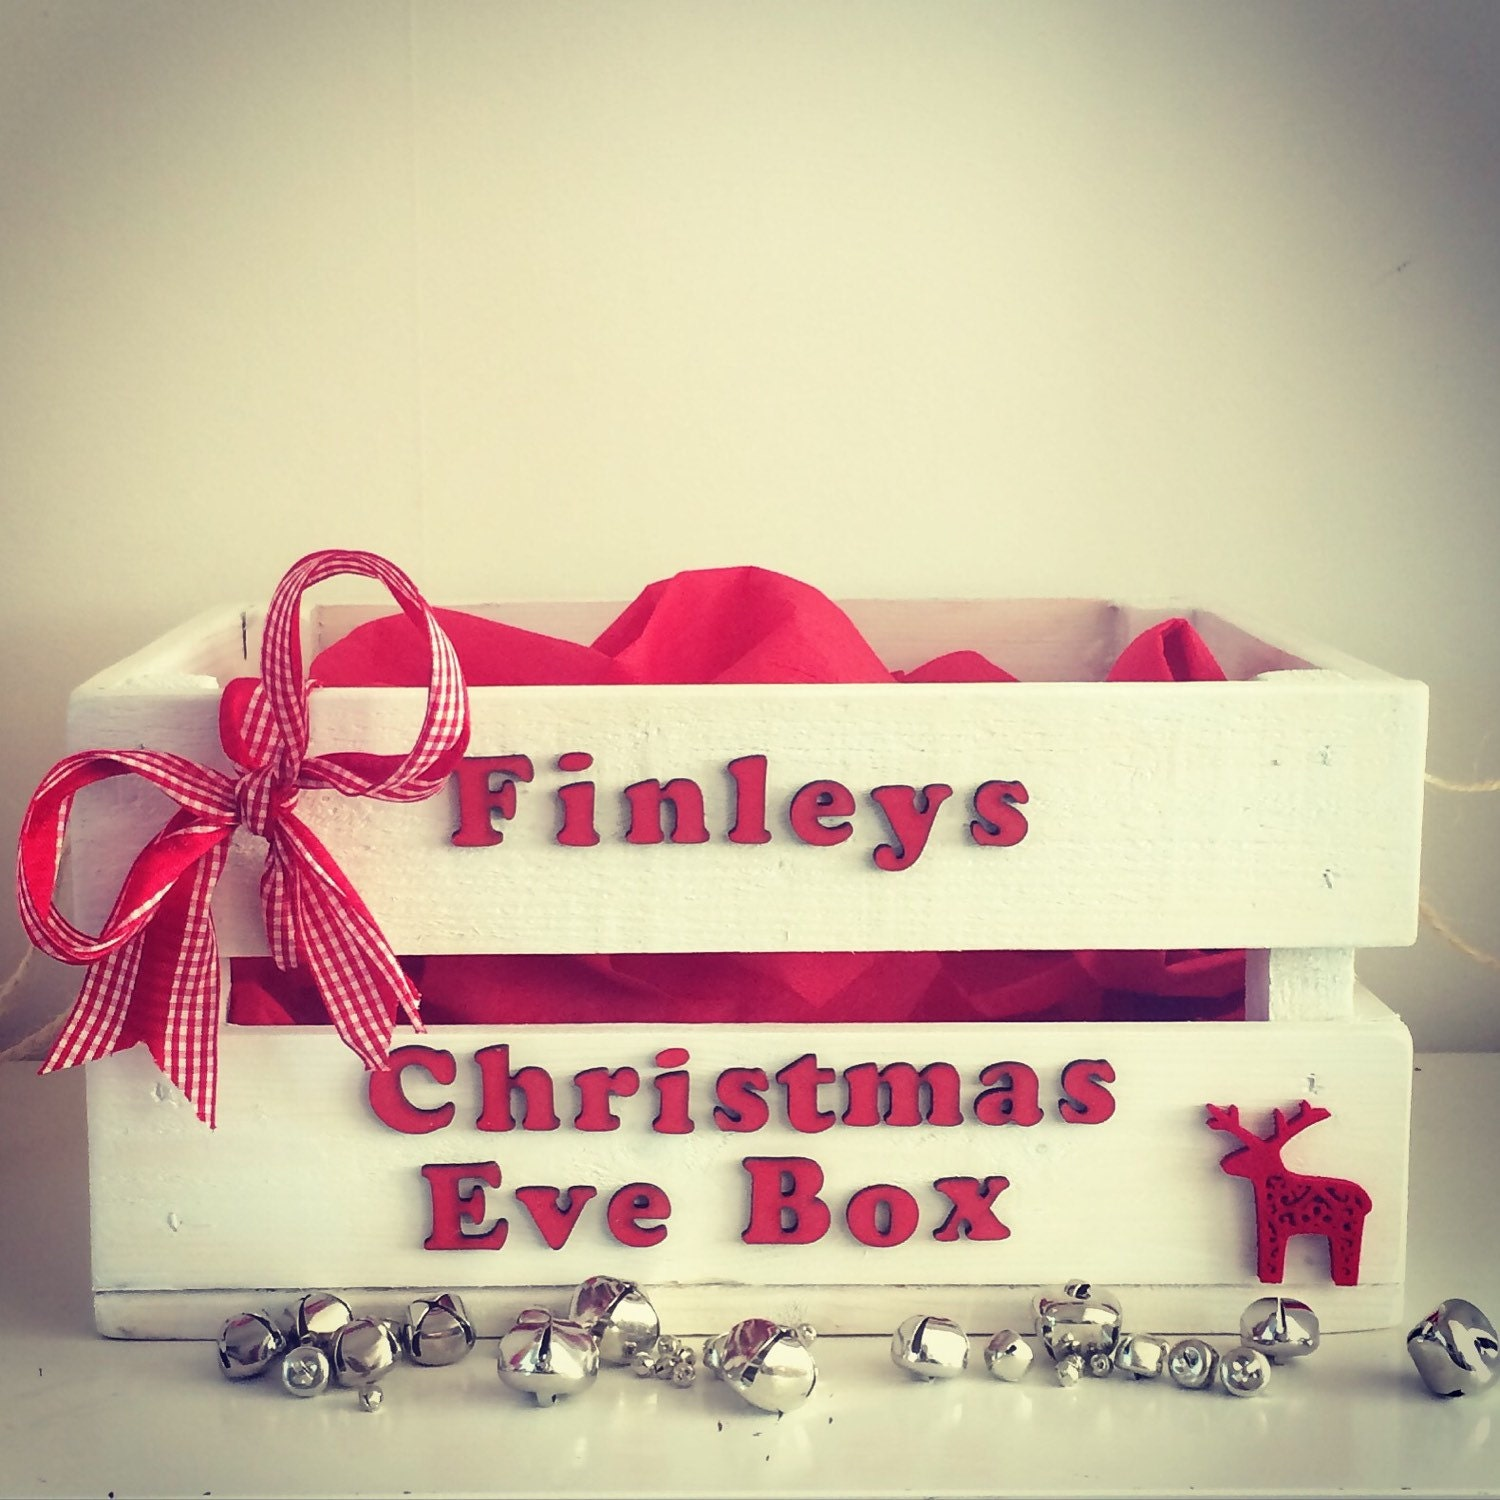 Christmas Eve Box Christmas Gift Wooden Crate By PerfectParcels1